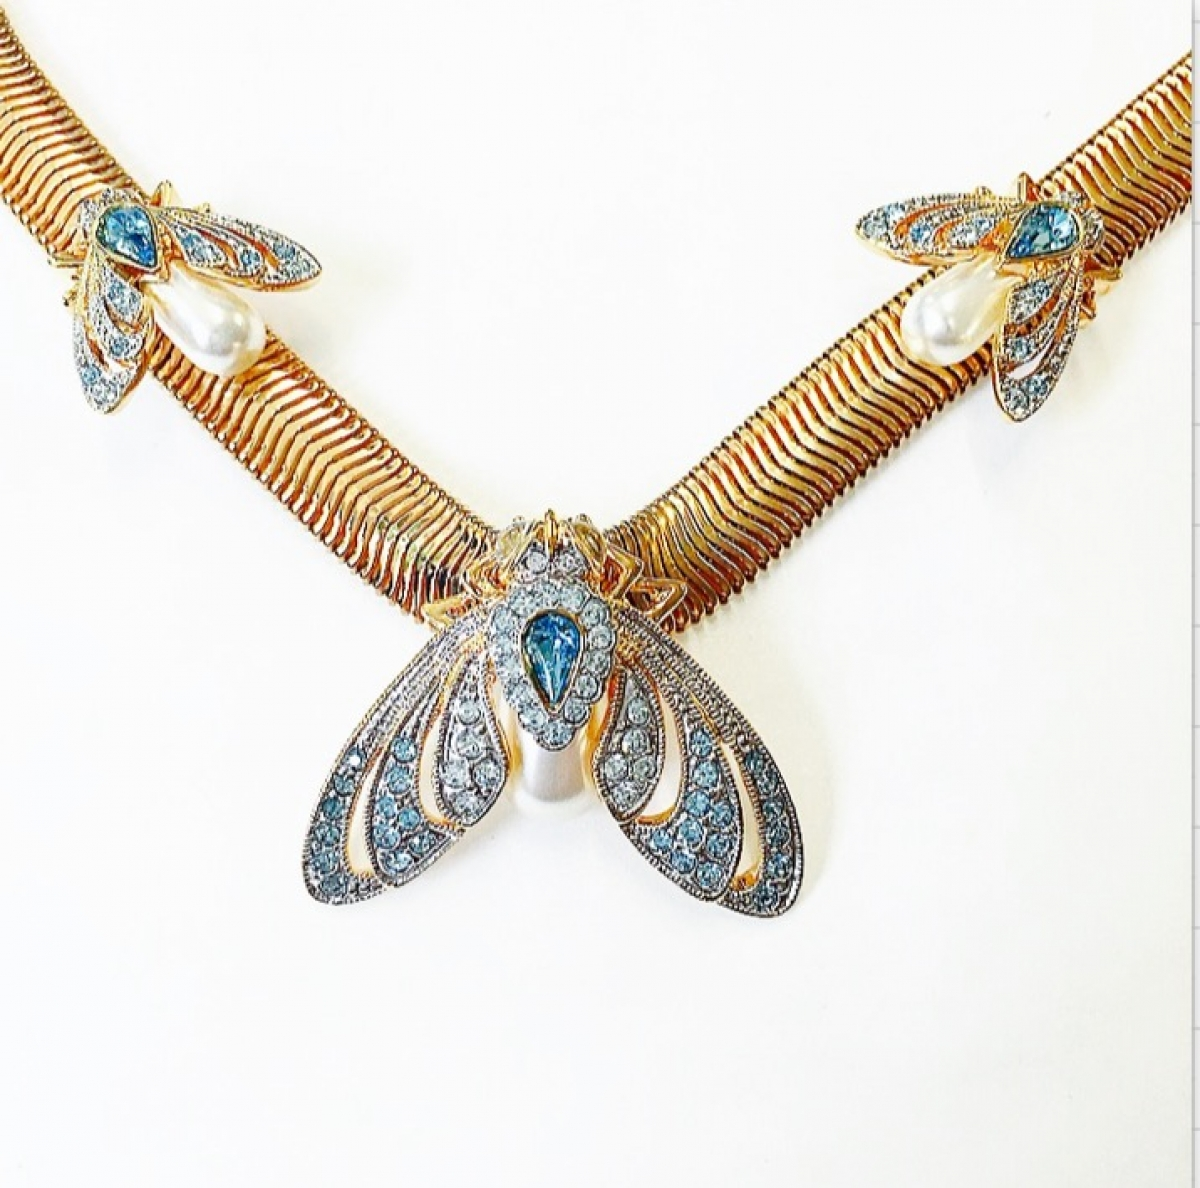 JEWELLED MOTH STATEMENT NECKLACE